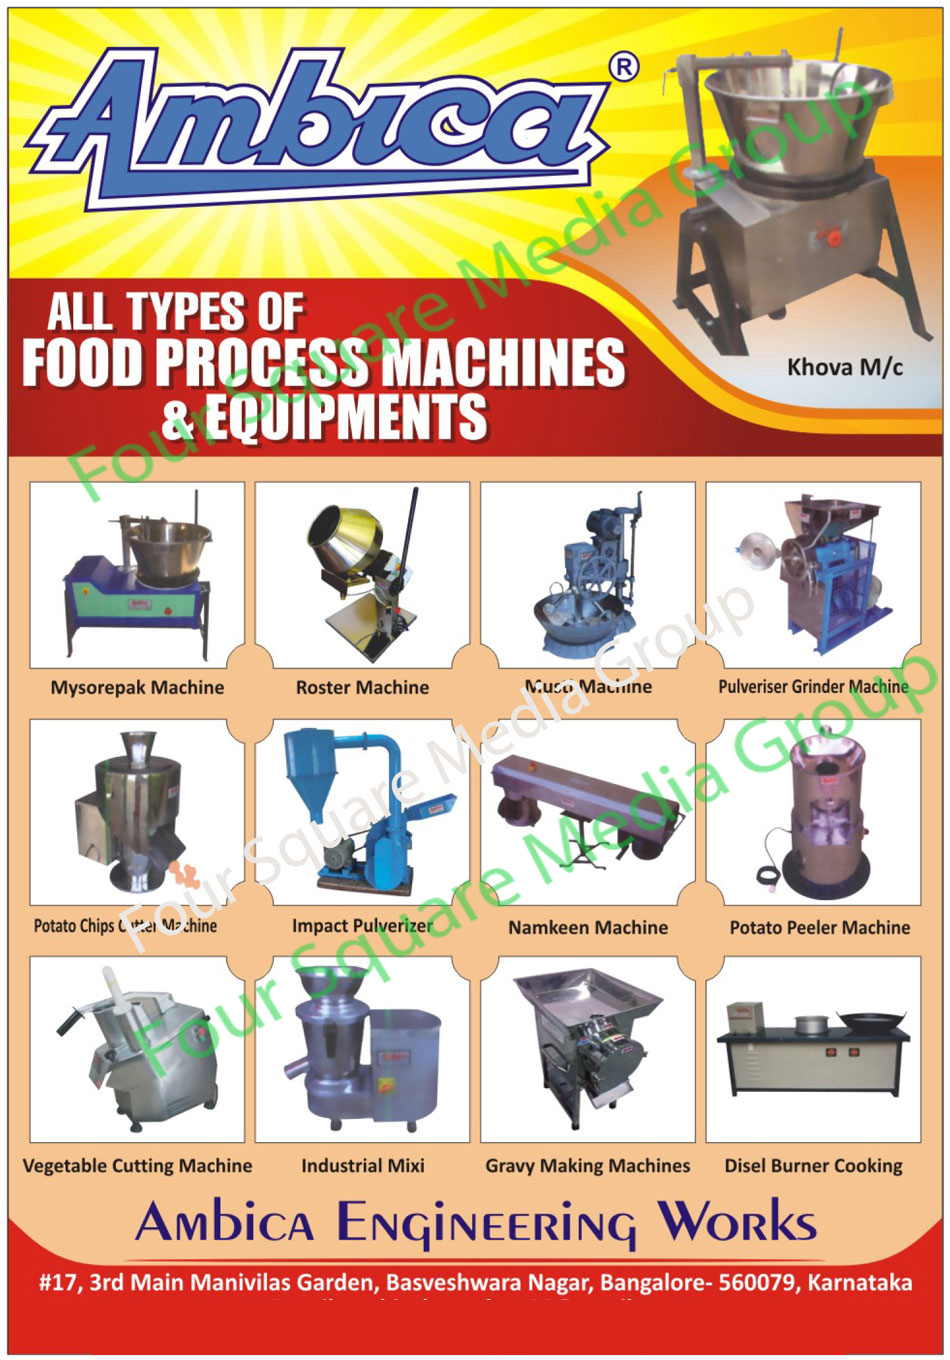 Food Processing Machines, Banana Chips Making Plants, Banana Wafers Making Plants, Potato Chips Making Plants, Potato Wafers Making Plants, Bulk Frying Pan With Automatic Burners, Namkeen Machines, Milk Khoya Machines, Ribbon Blender Sigma Mix, Dry Fruit Cutting Machines, Industrial Mixi, Industrial Grinders, Vegetable Cutting Machines, Industrial Burners, Commercial Burners, Hotwater Boilers, Steam Boilers, Chapati Cutting Machines, Papad Cutting Machines, Chapati Sheeting Machines, Papad Sheeting Machines, Dough Kneading Cum Feeding Machines, Grinder For Food, Pulverizer For Food,Ribbon Blender Sigma Mixi, Mysorepak Machines, Roaster Machines, Musti Machines, Pulveriser Grinder Machines, Pulverizer Grinder Machines, Potato Chips Cutter Machines, Potato Chips Cutting Machines, Potato Wafer Cutter Machines, Potato Wafer Cutting Machines, Impact Pulverizer, Impact Pulveriser, Potato Peeler Machines, Potato Peeling Machines, Gravy Making Machines, Diesel Burner Cooking Range, Khova Machines, Food Processing Equipments